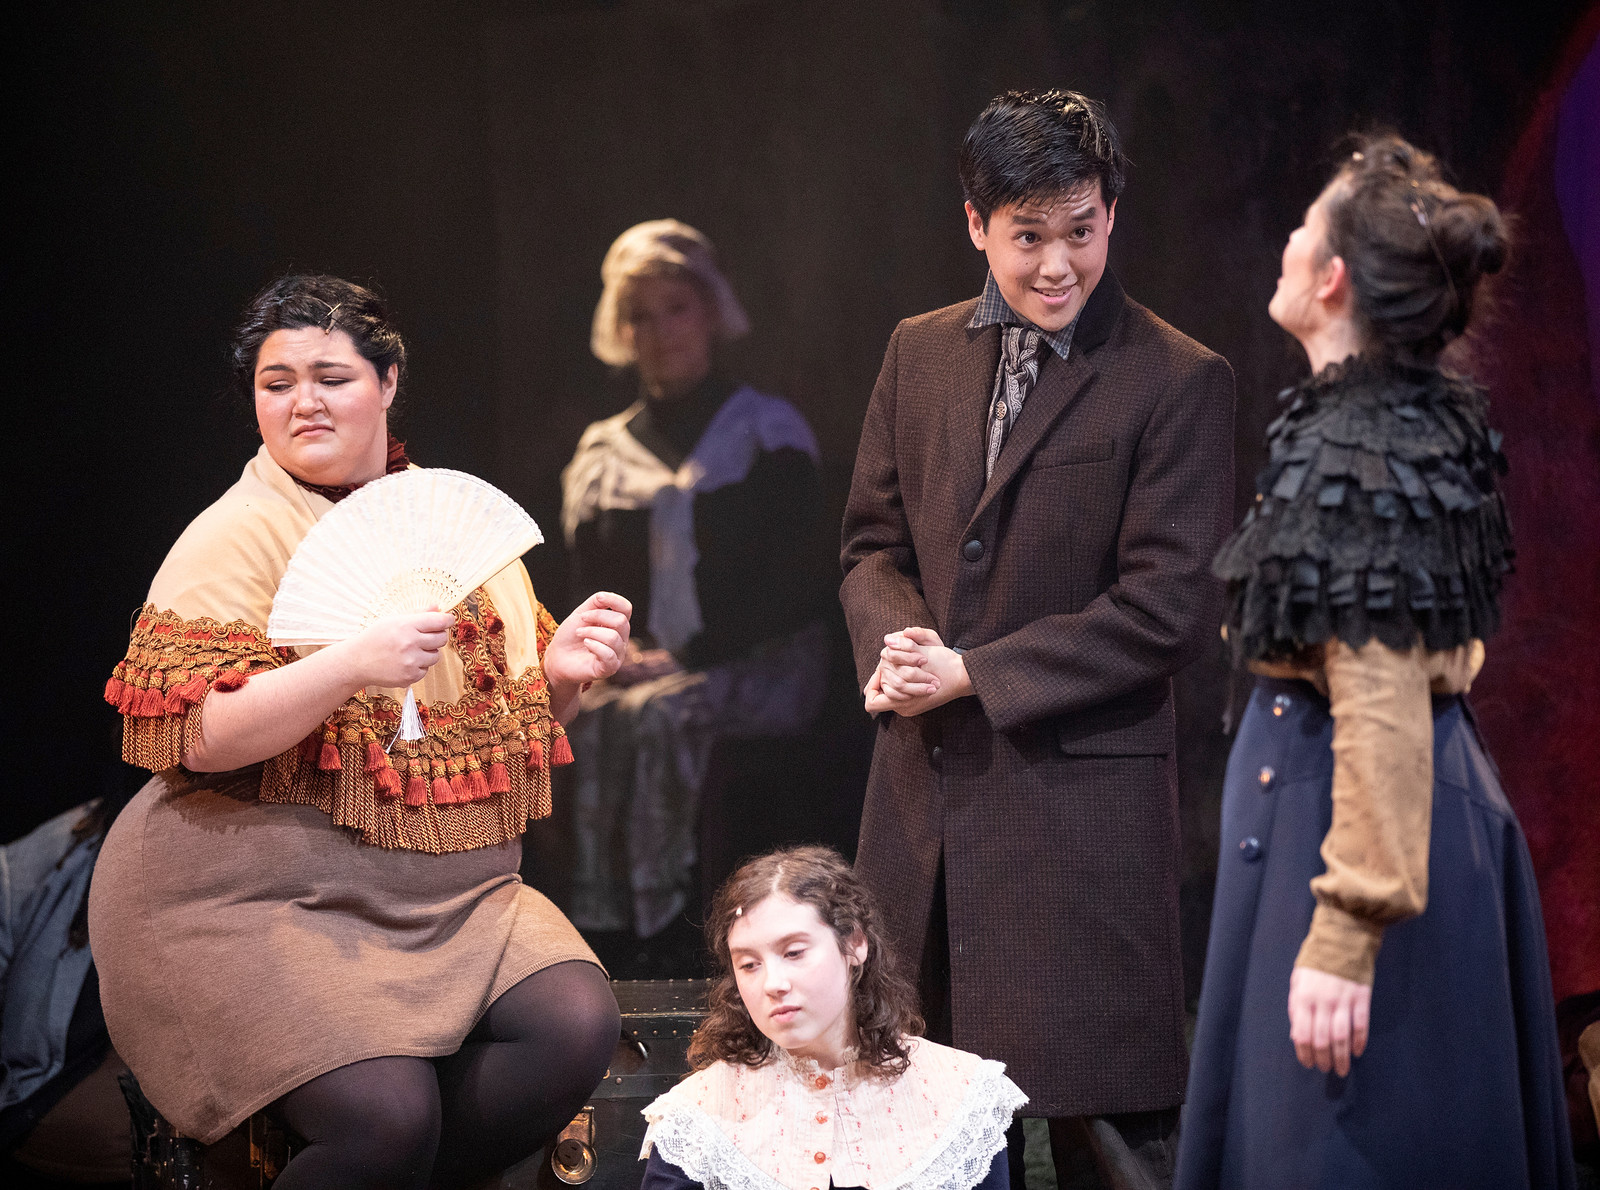 Jane Eyre: The Musical